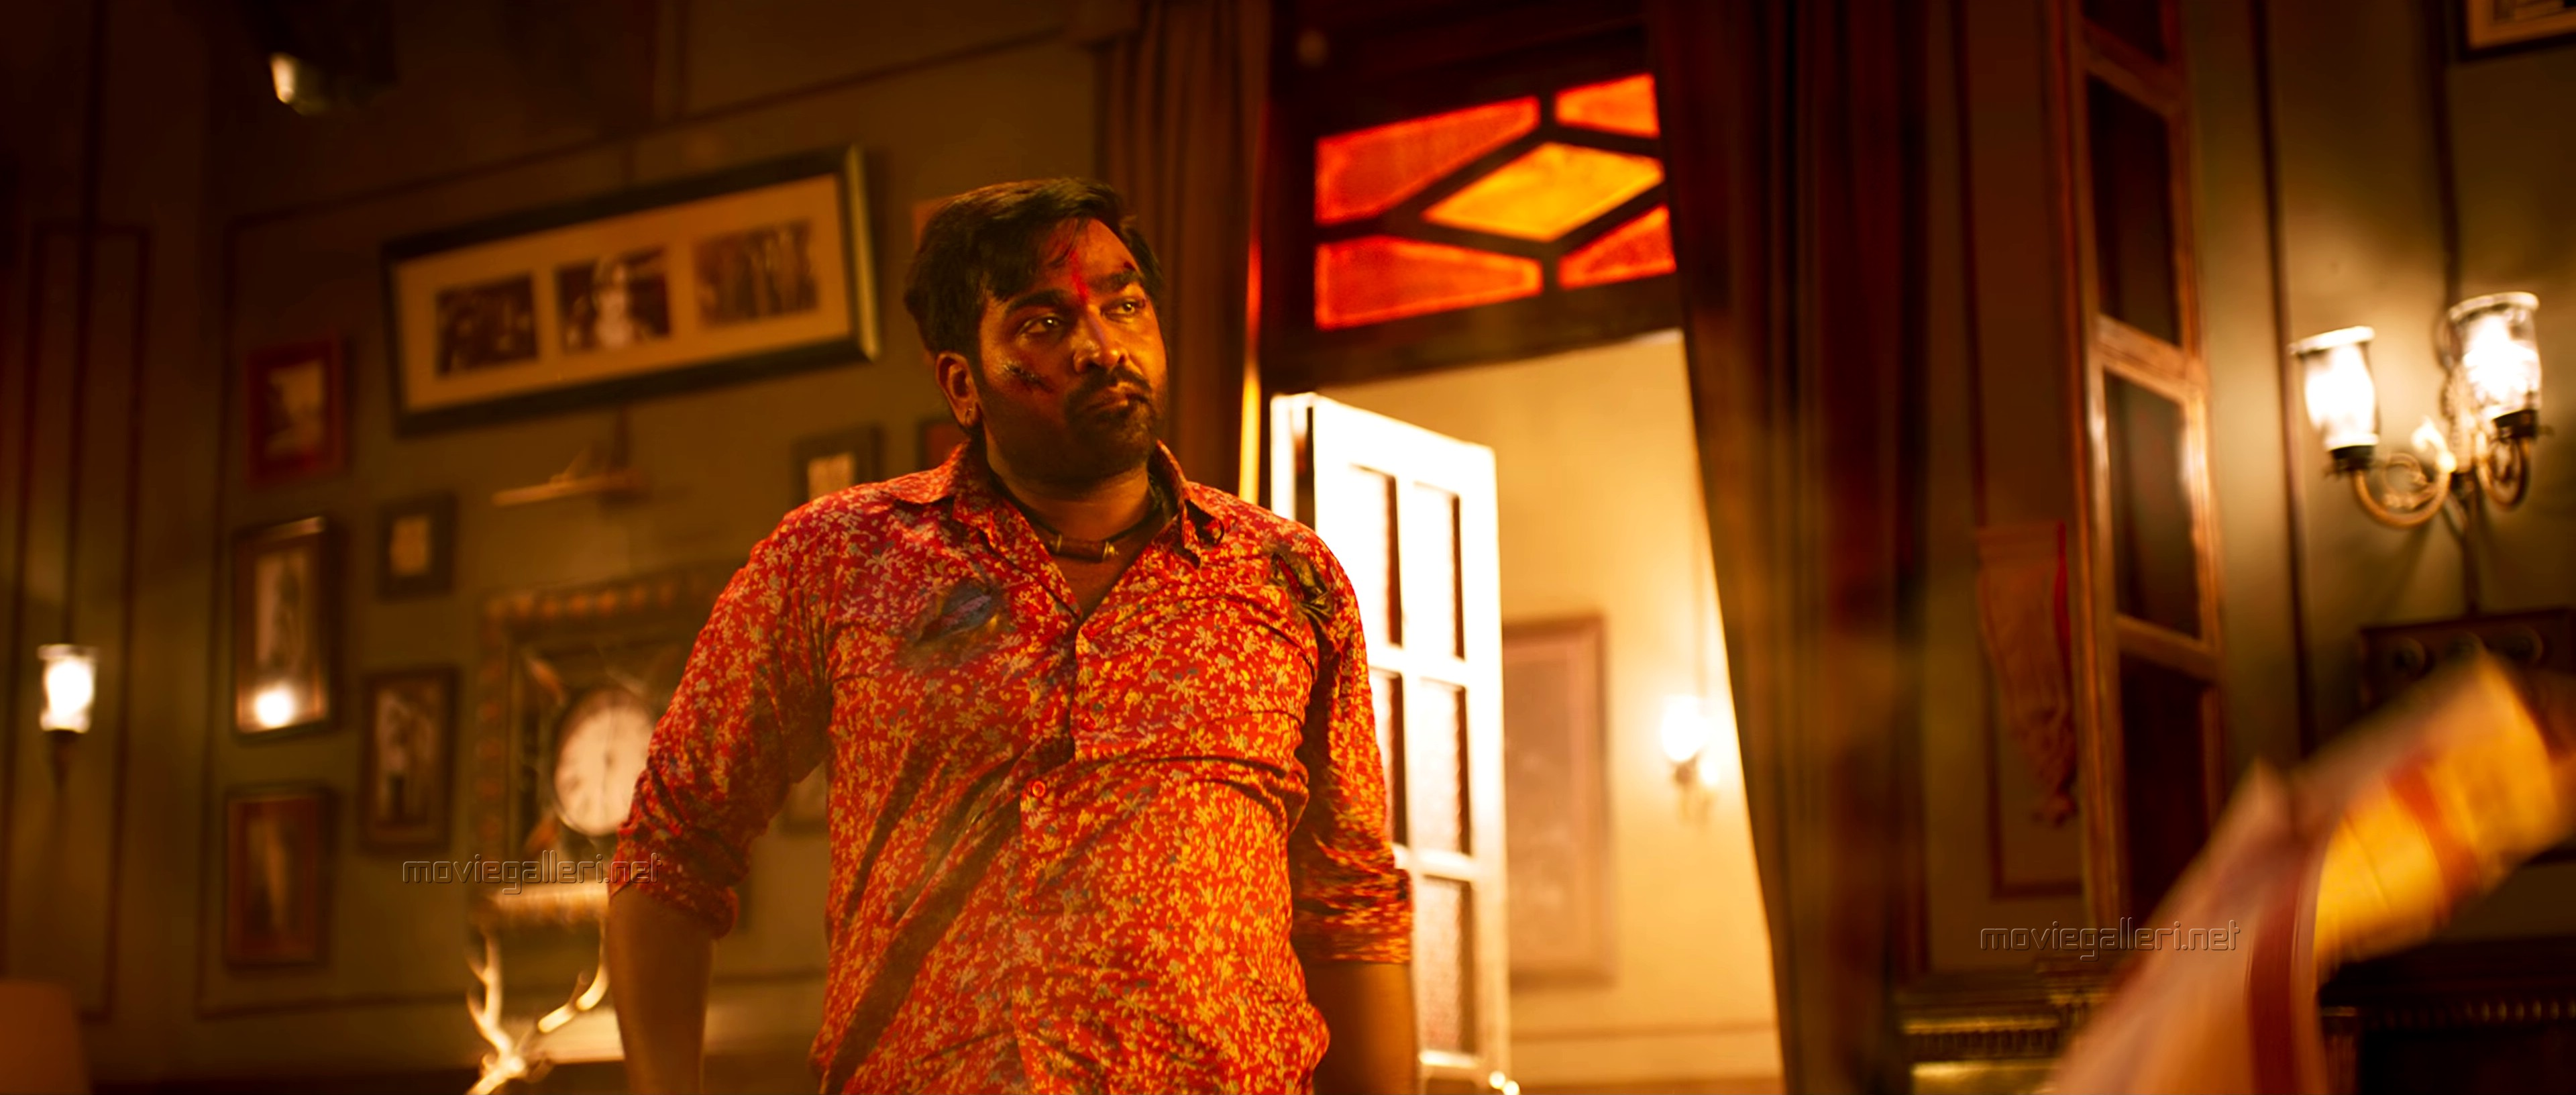 Actor Vijay Sethupathi in Petta Movie Images HD